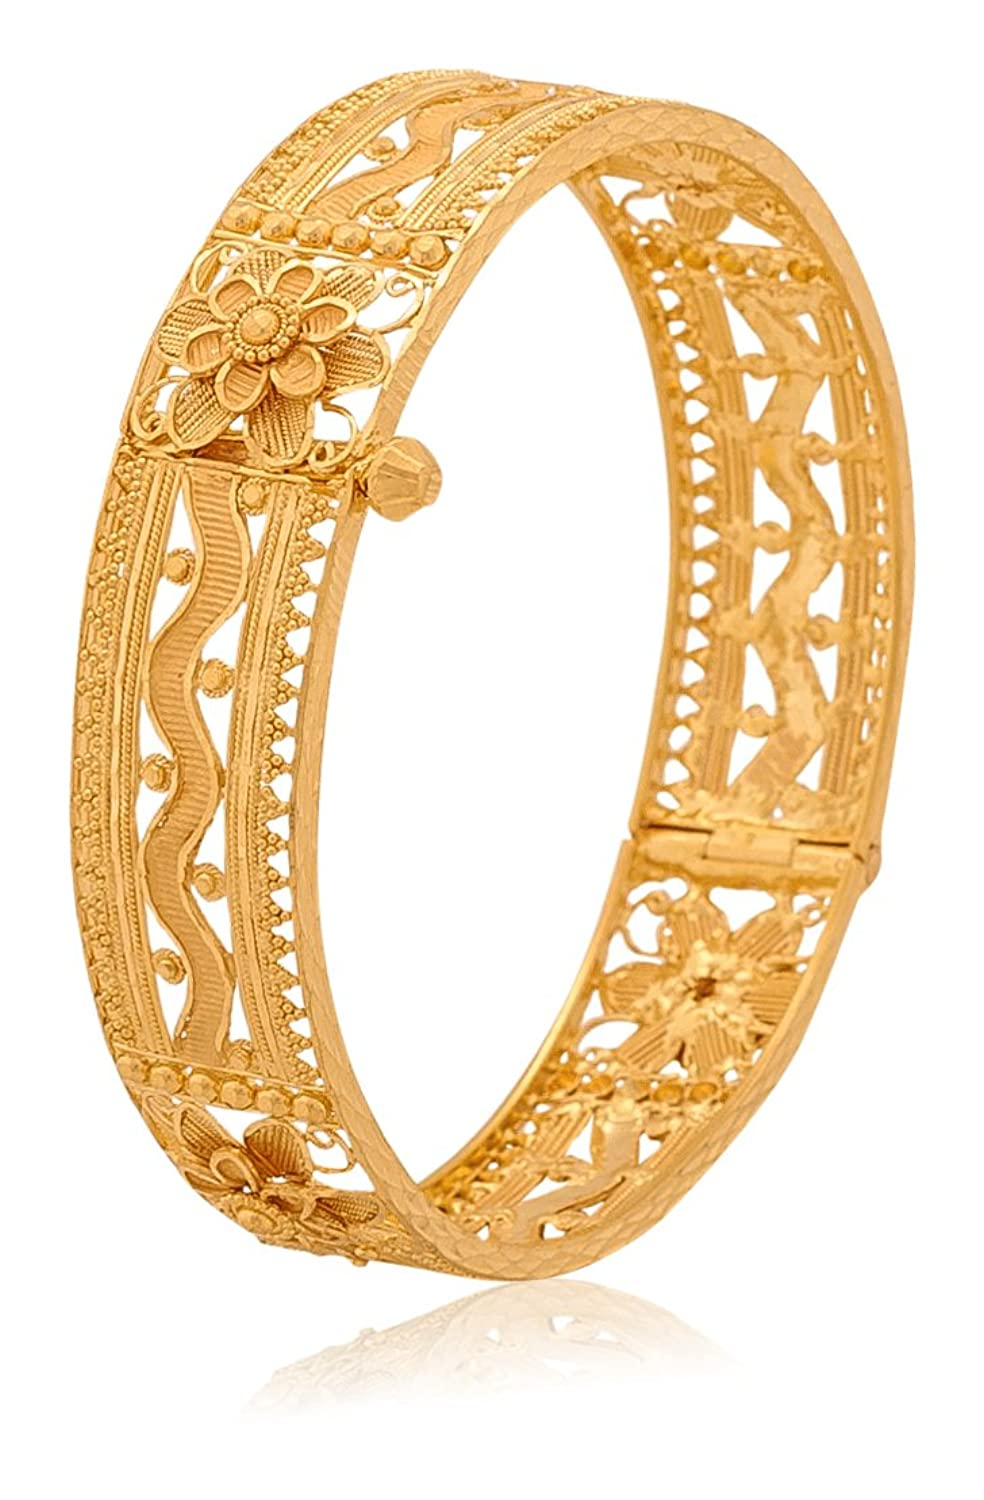 Buy Senco Gold Aura Collection 22k Yellow Gold Bangle Online at Low ...